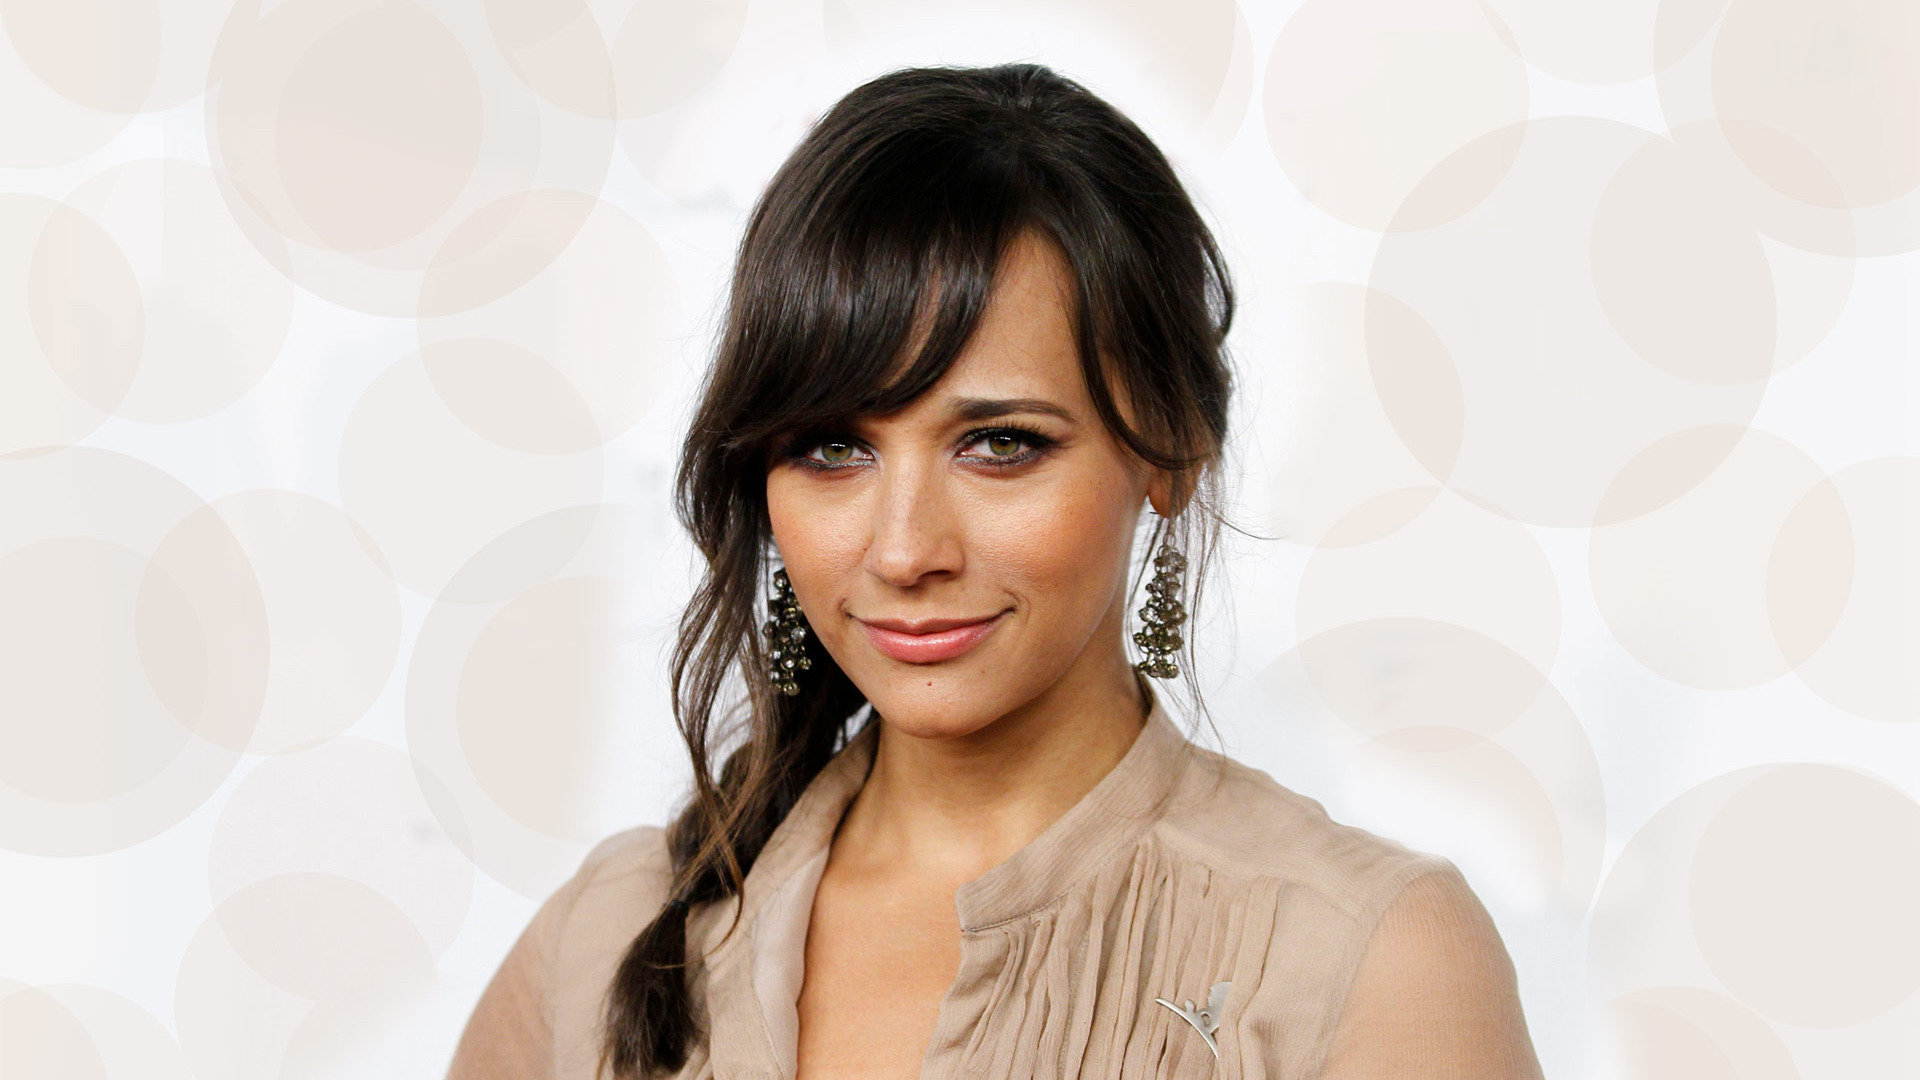 Free download Rashida Jones background ID:245868 full hd 1080p for desktop